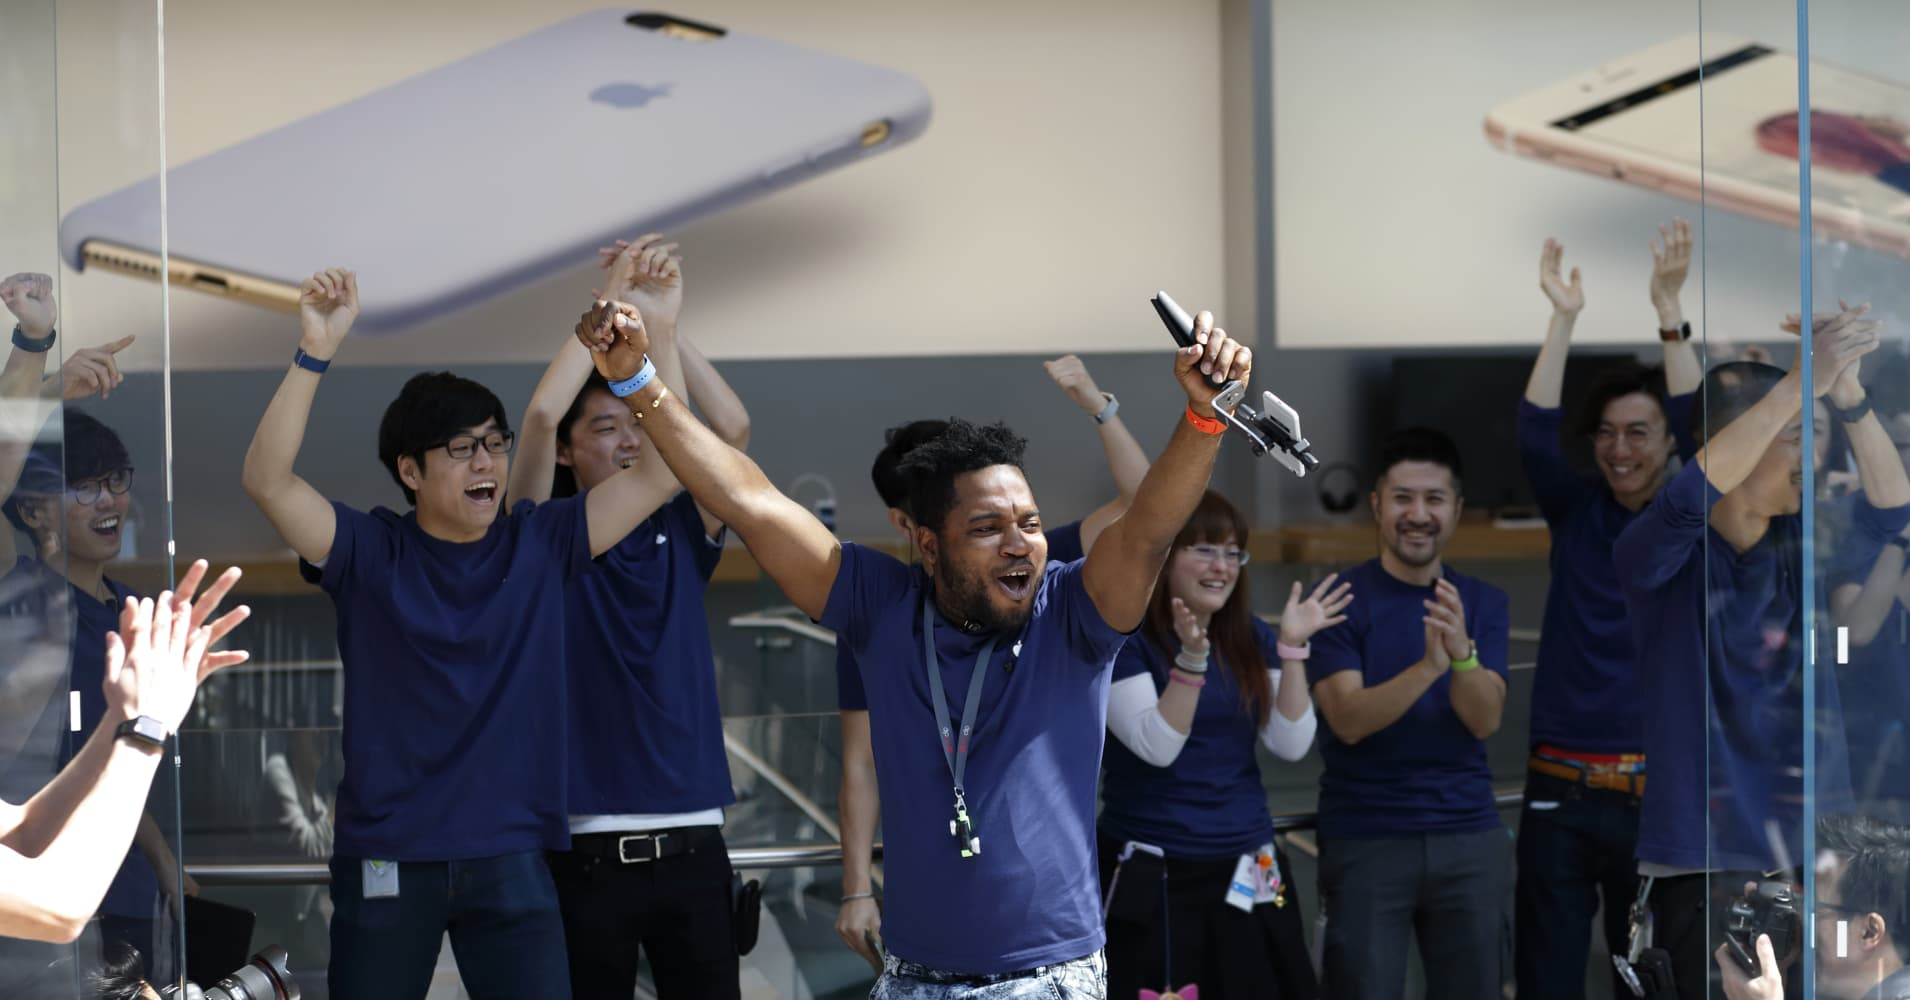 Employees cheer before the launch of Apple Inc. iPhone SE and iPad Pro 9.7